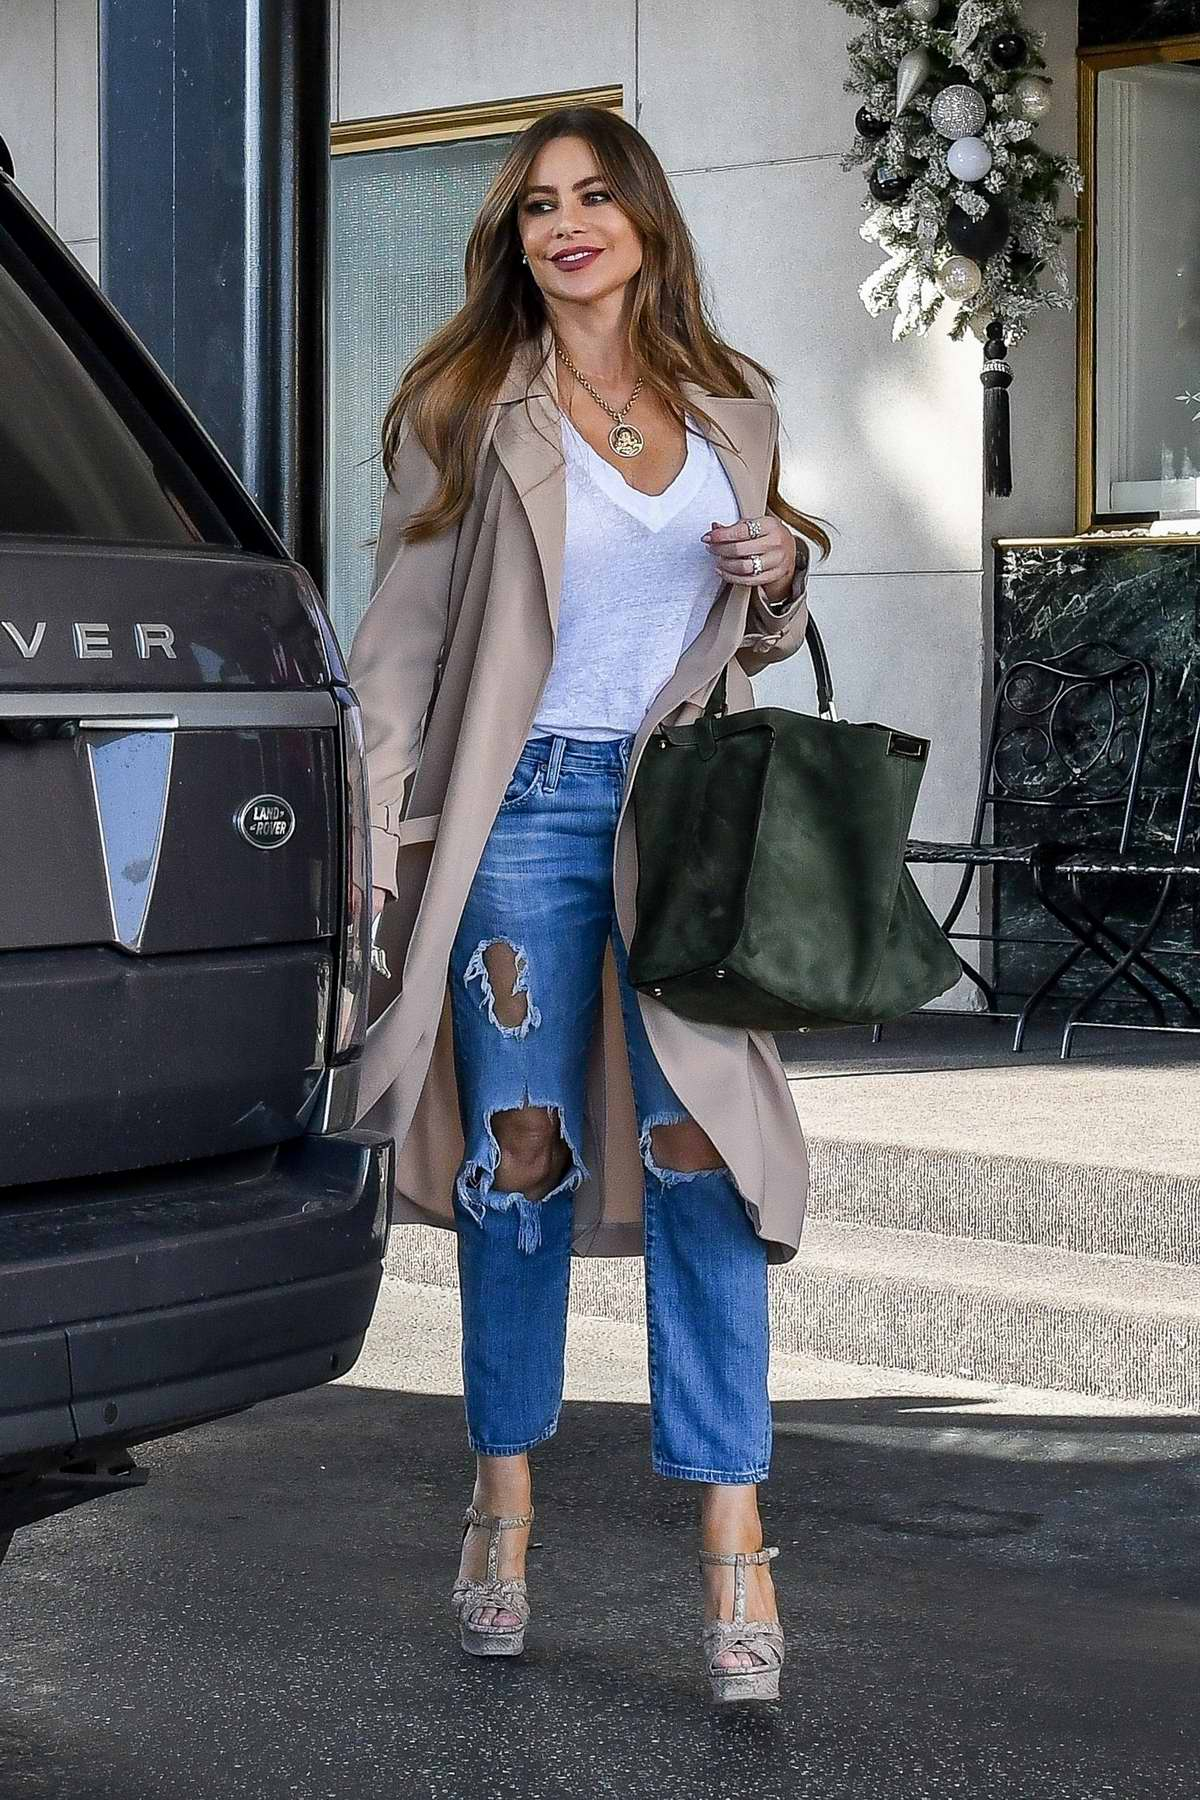 Sofia Vergara is all smiles as she ends a shopping trip at Saks Fifth Avenue in Beverly Hills, California